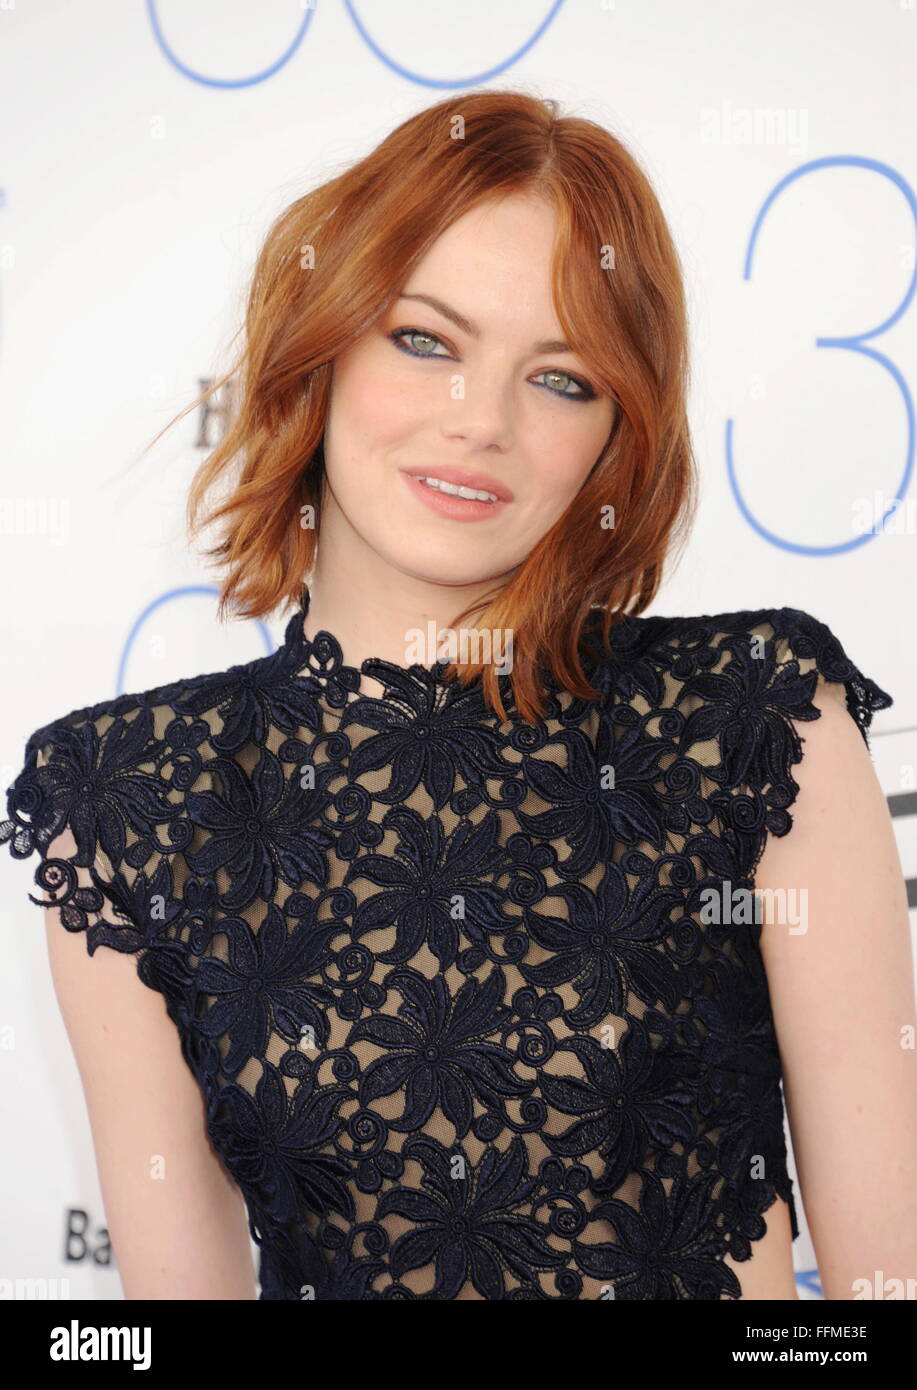 L'actrice Emma Stone arrive au Film Independent Spirit Awards 2015 le 21 février 2015 à Santa Monica, Photo Stock